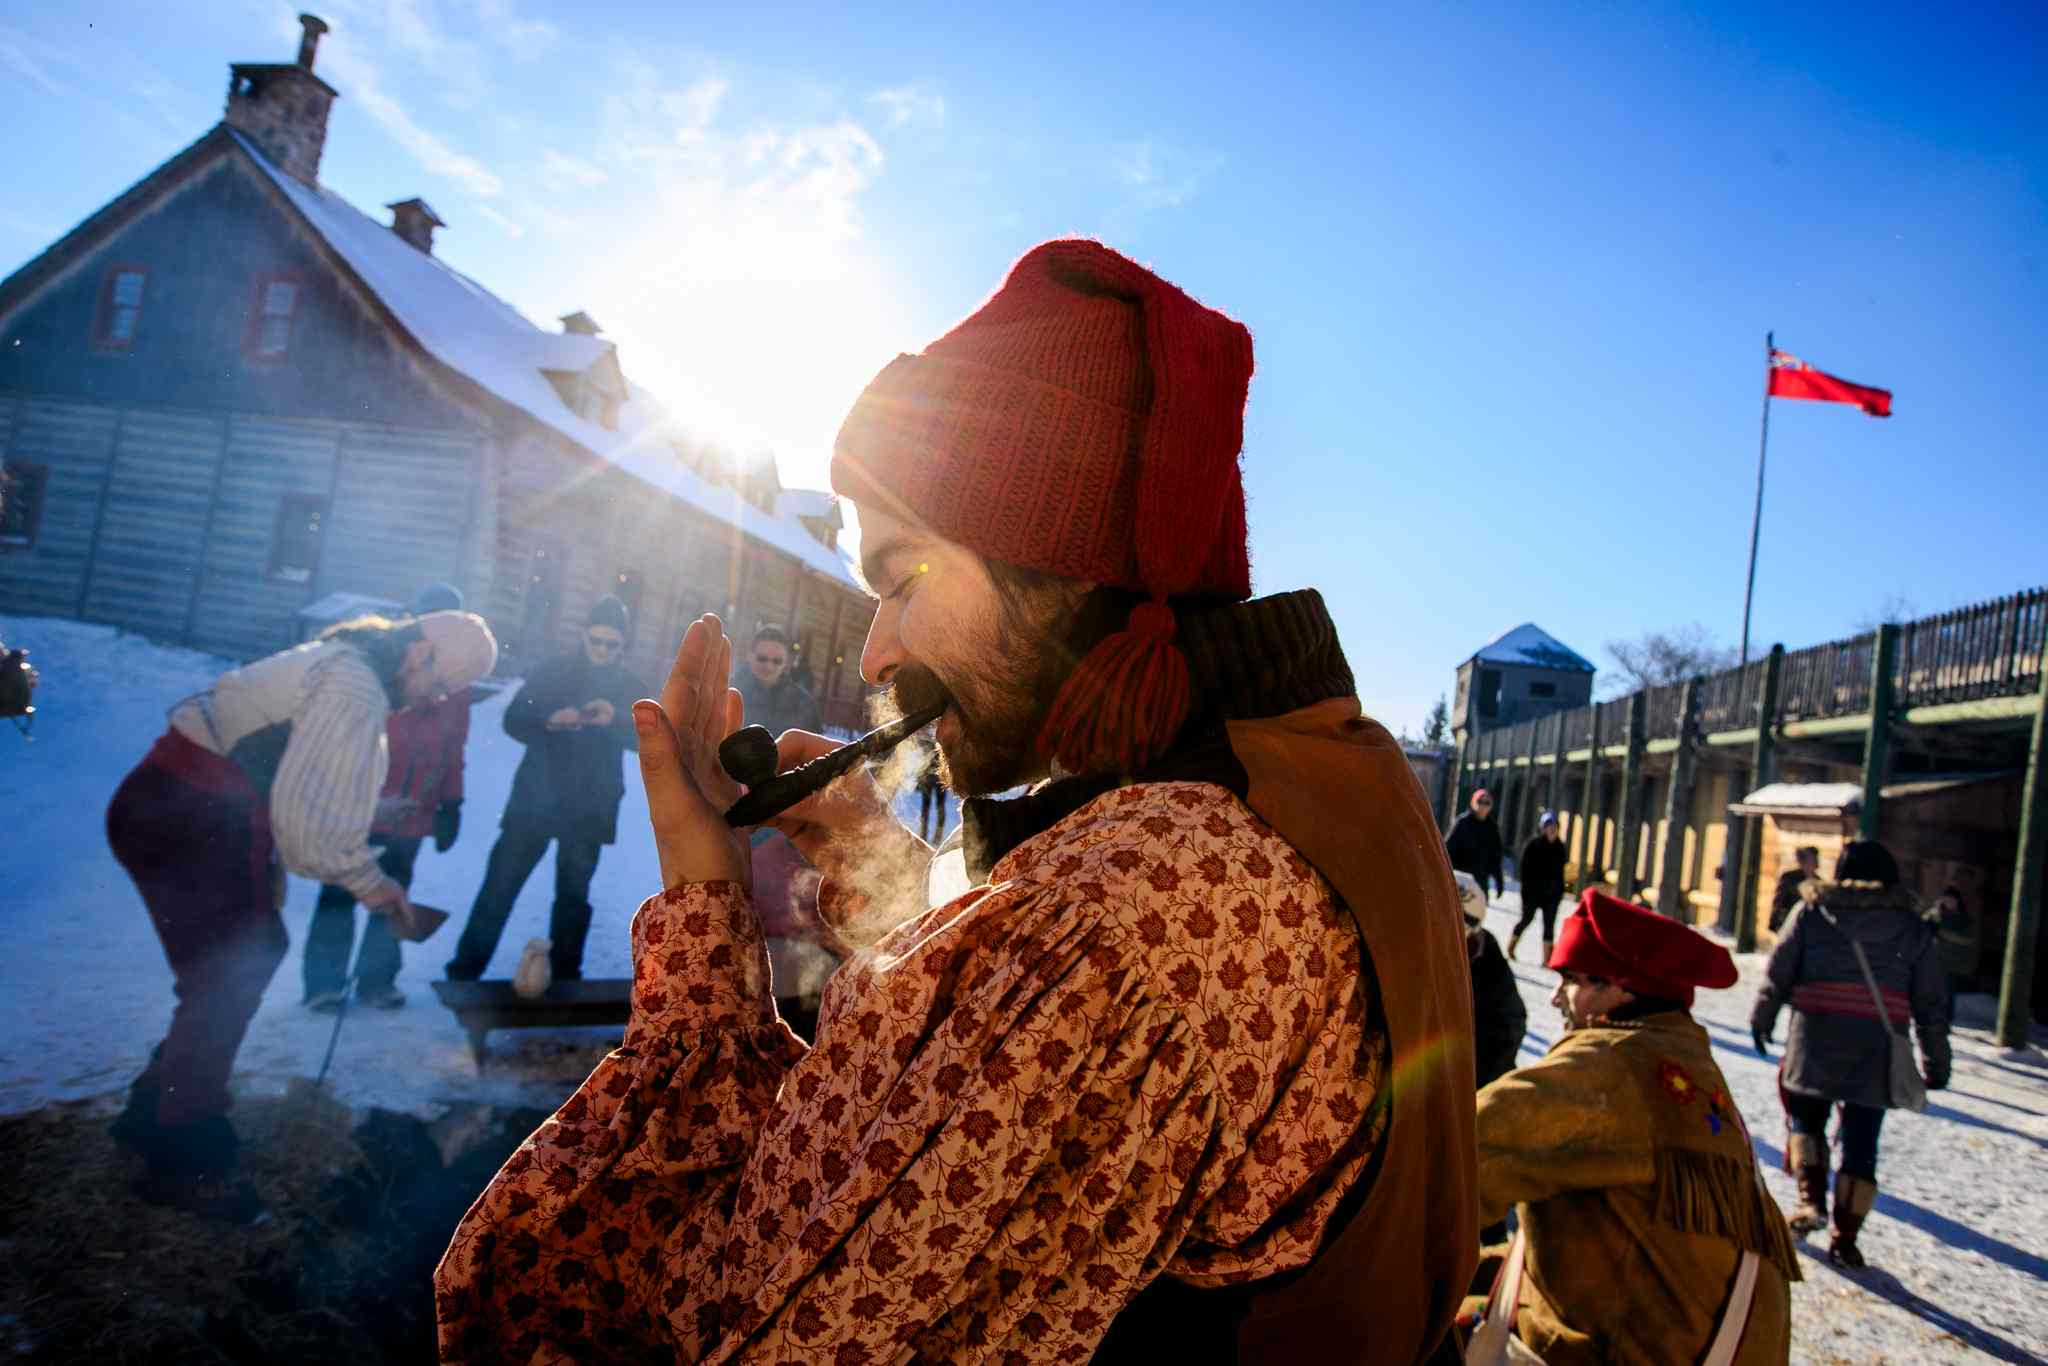 Barney Morin lights his tobacco pipe before telling a story at a camp du feu (fire camp) at Festival du Voyageur on Louis Riel Day.